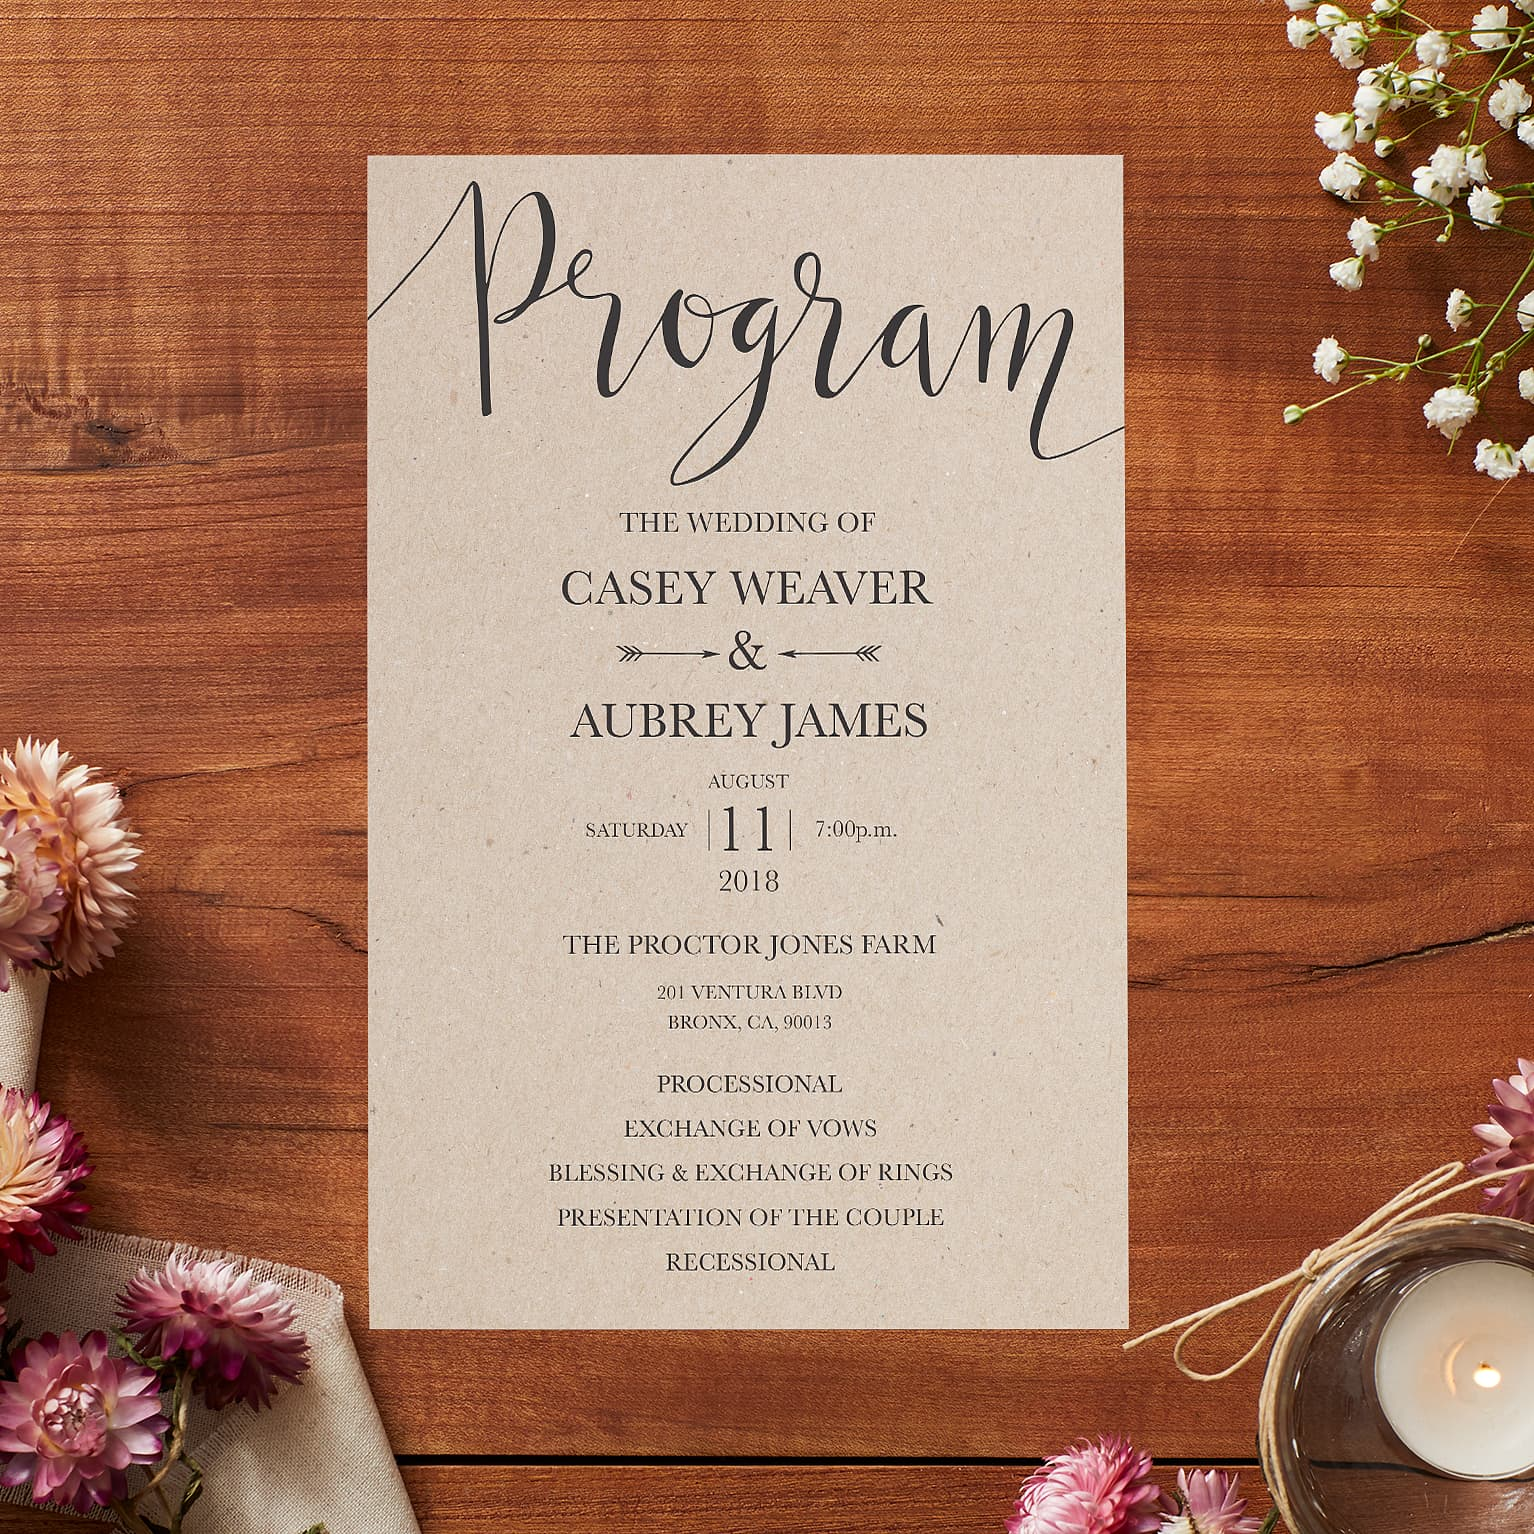 Wedding Programs for Ceremonies & Receptions | Vistaprint